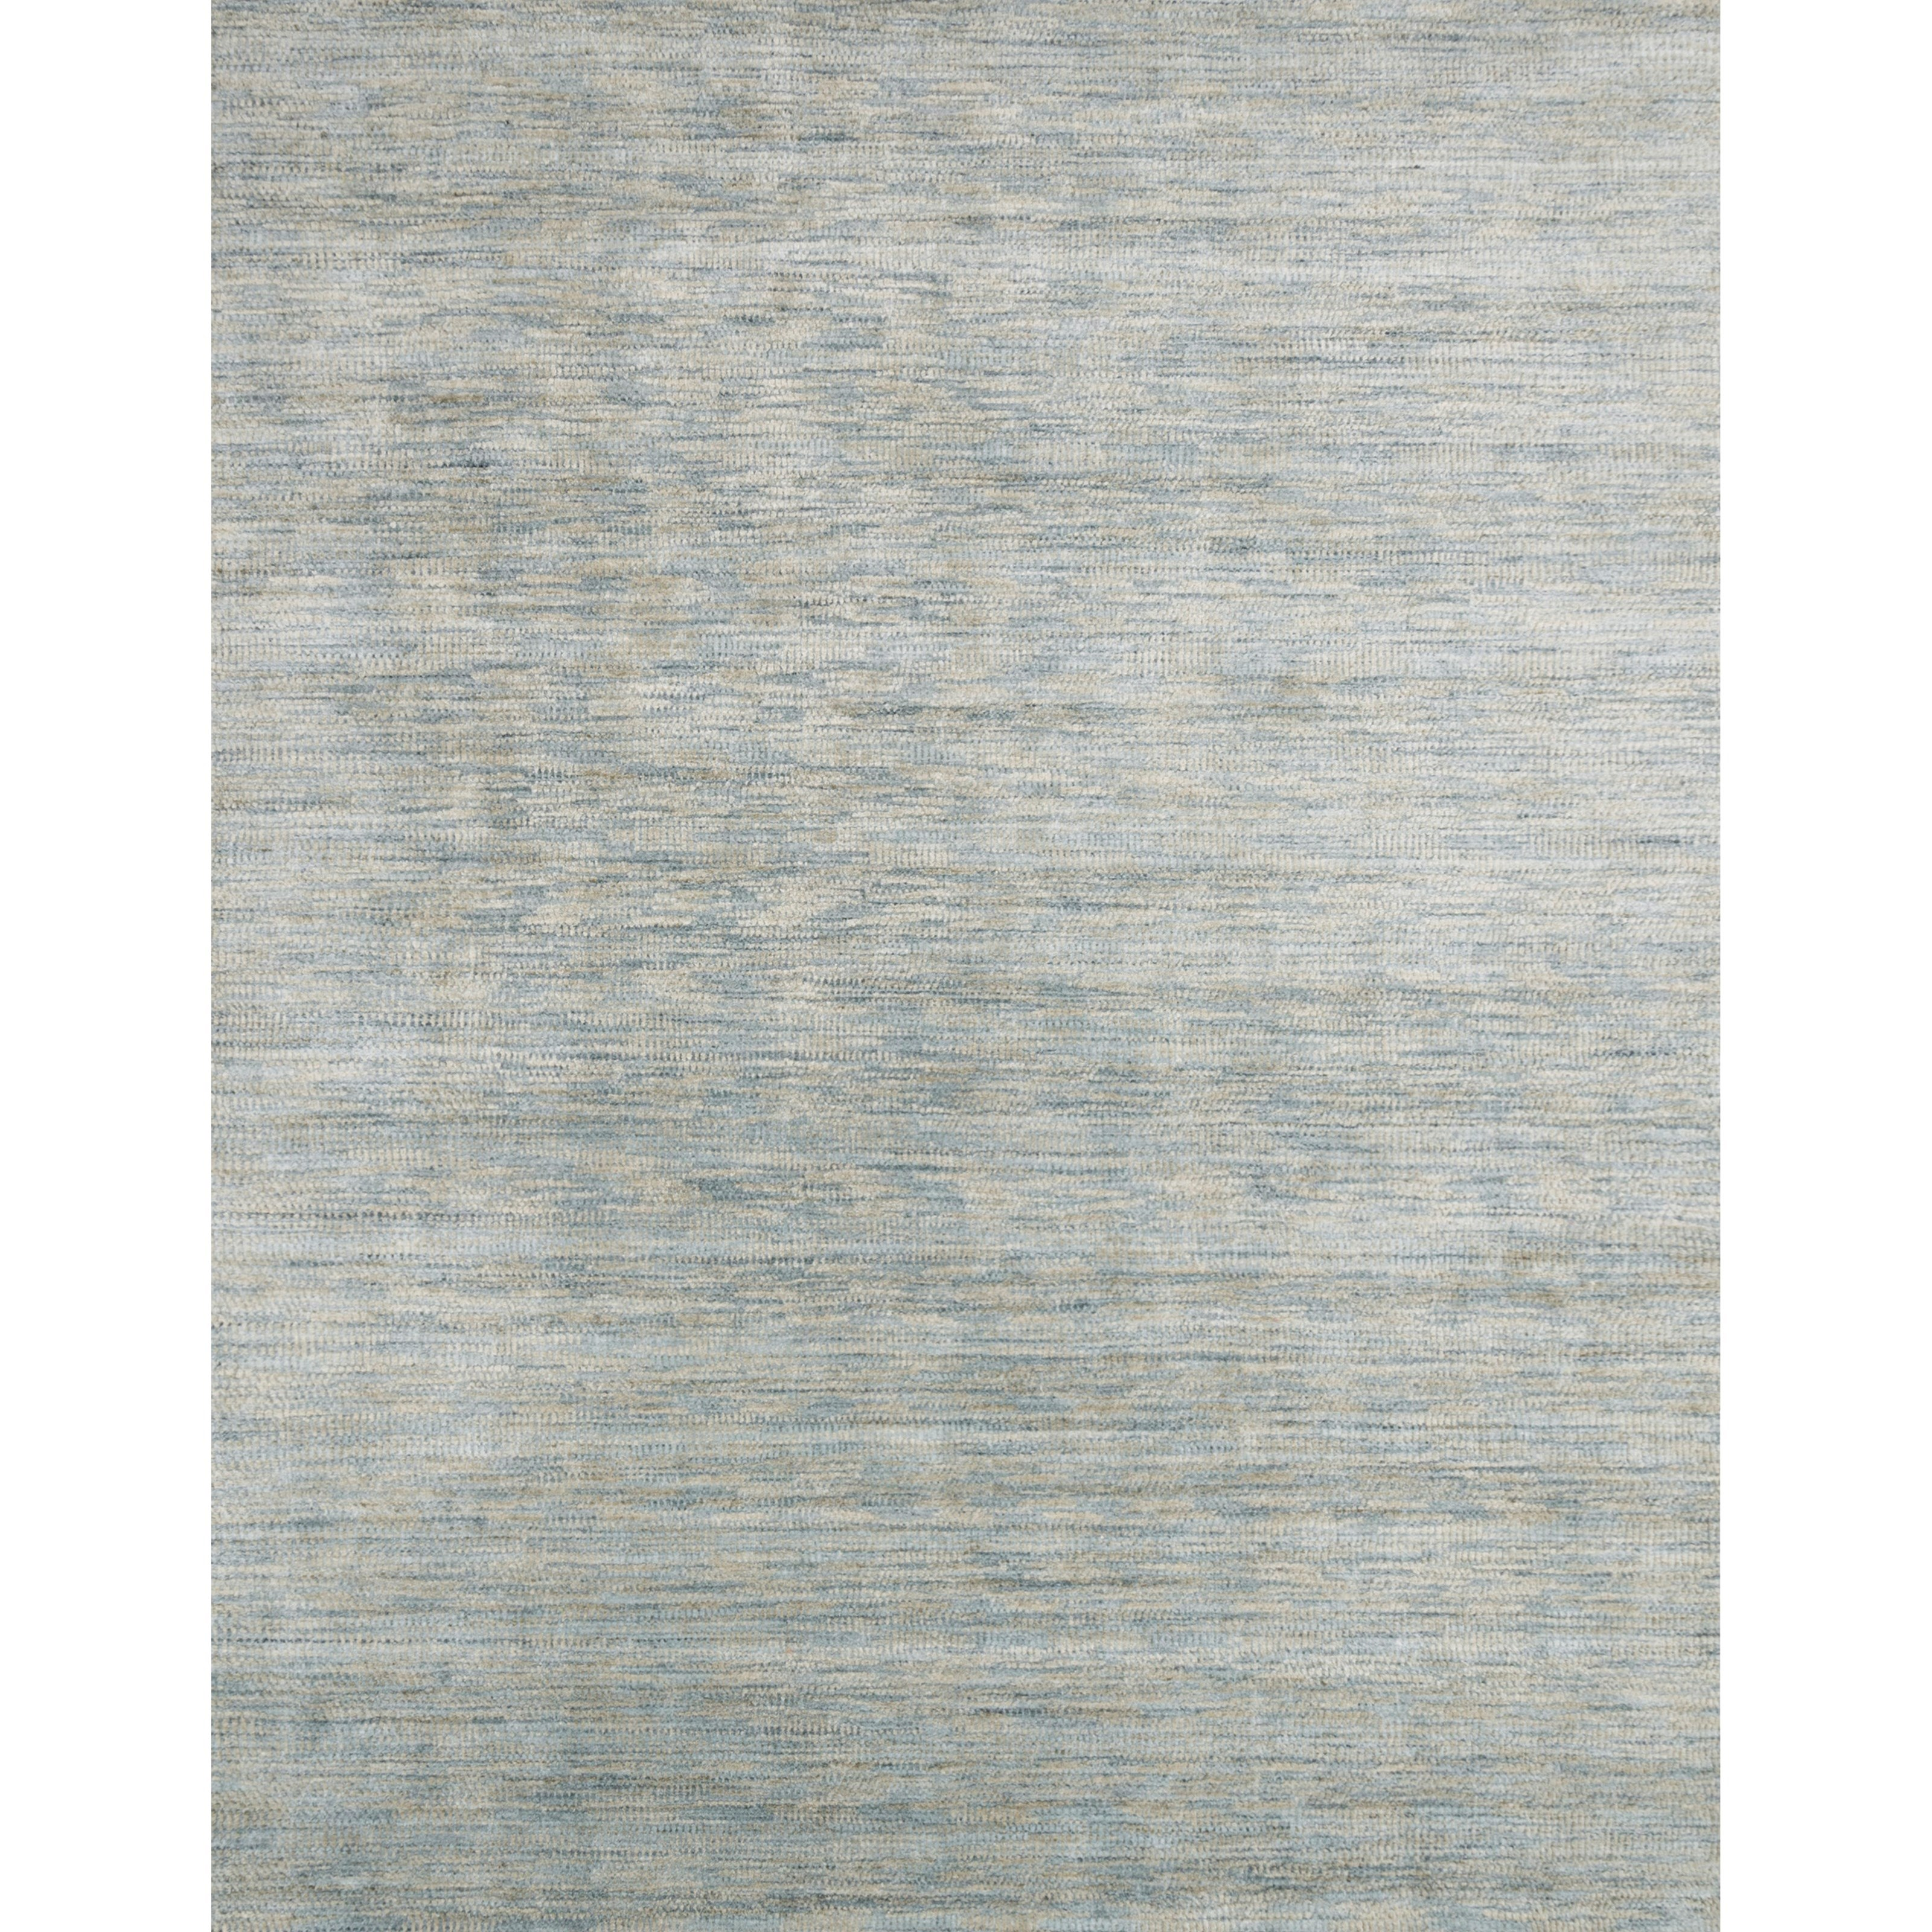 """Robin 2'0"""" x 3'0"""" Mist Rug by Loloi Rugs at Virginia Furniture Market"""